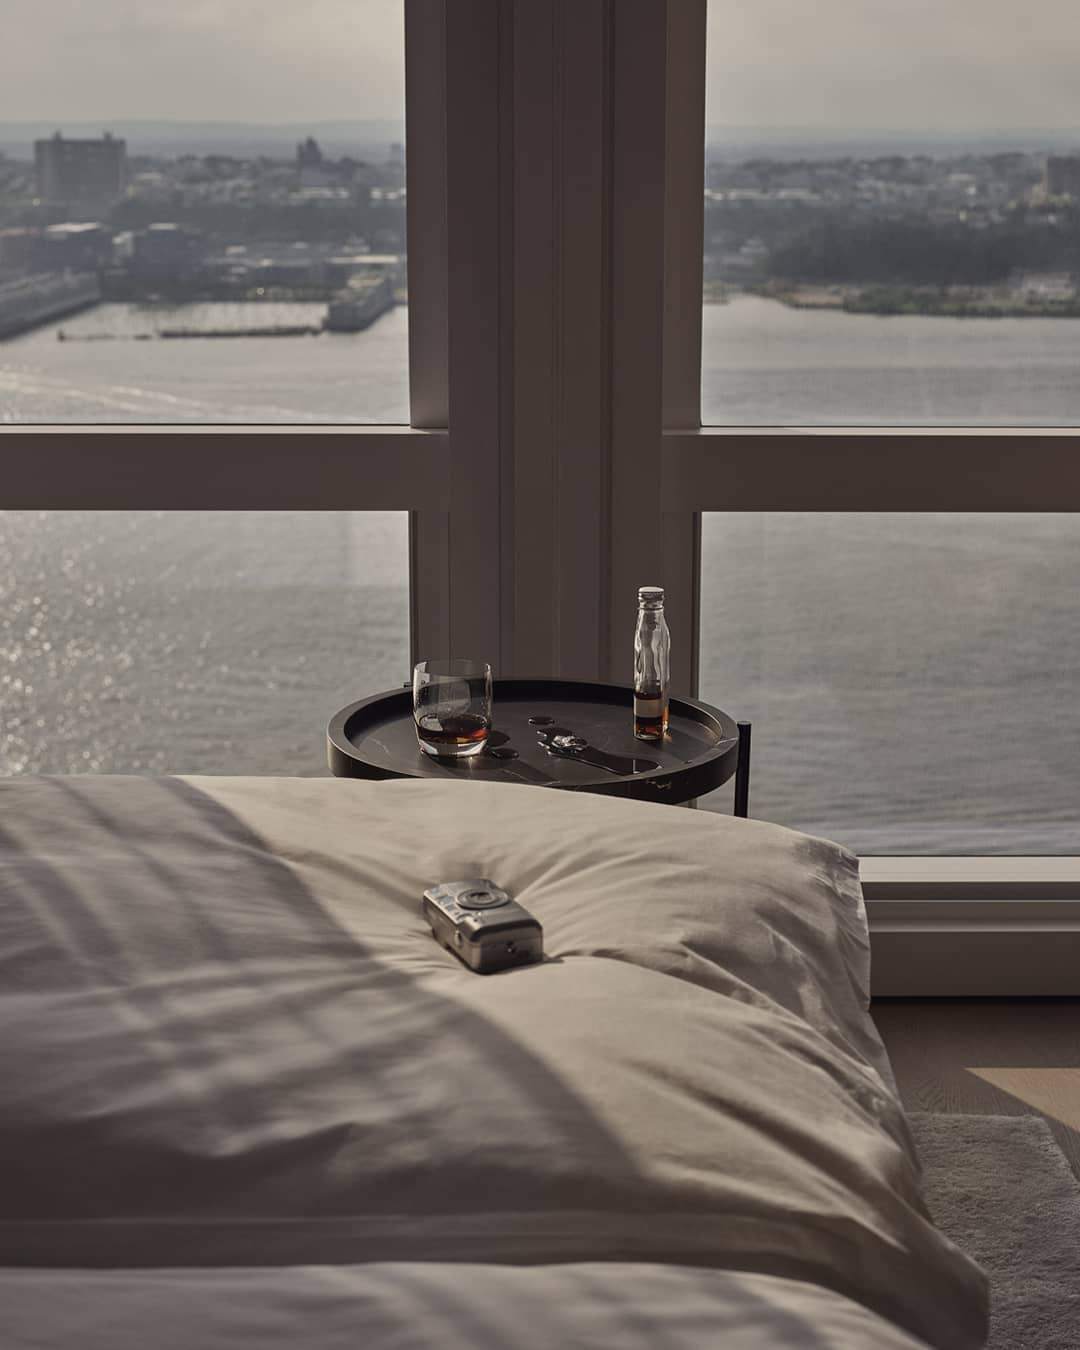 equinox river view hotel room